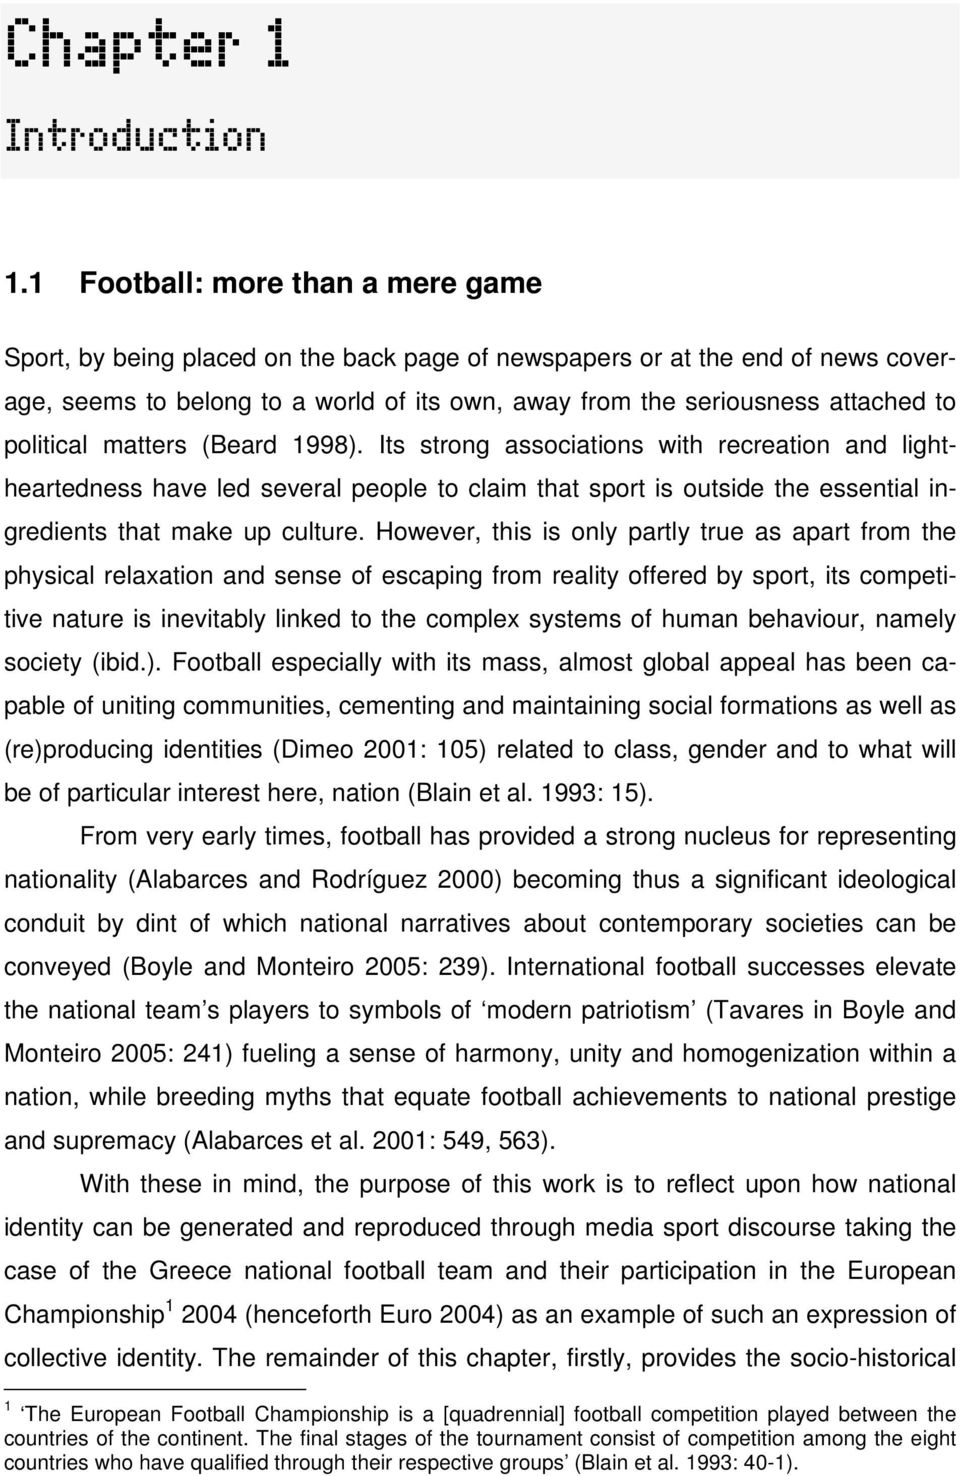 political matters (Beard 1998). Its strong associations with recreation and lightheartedness have led several people to claim that sport is outside the essential ingredients that make up culture.